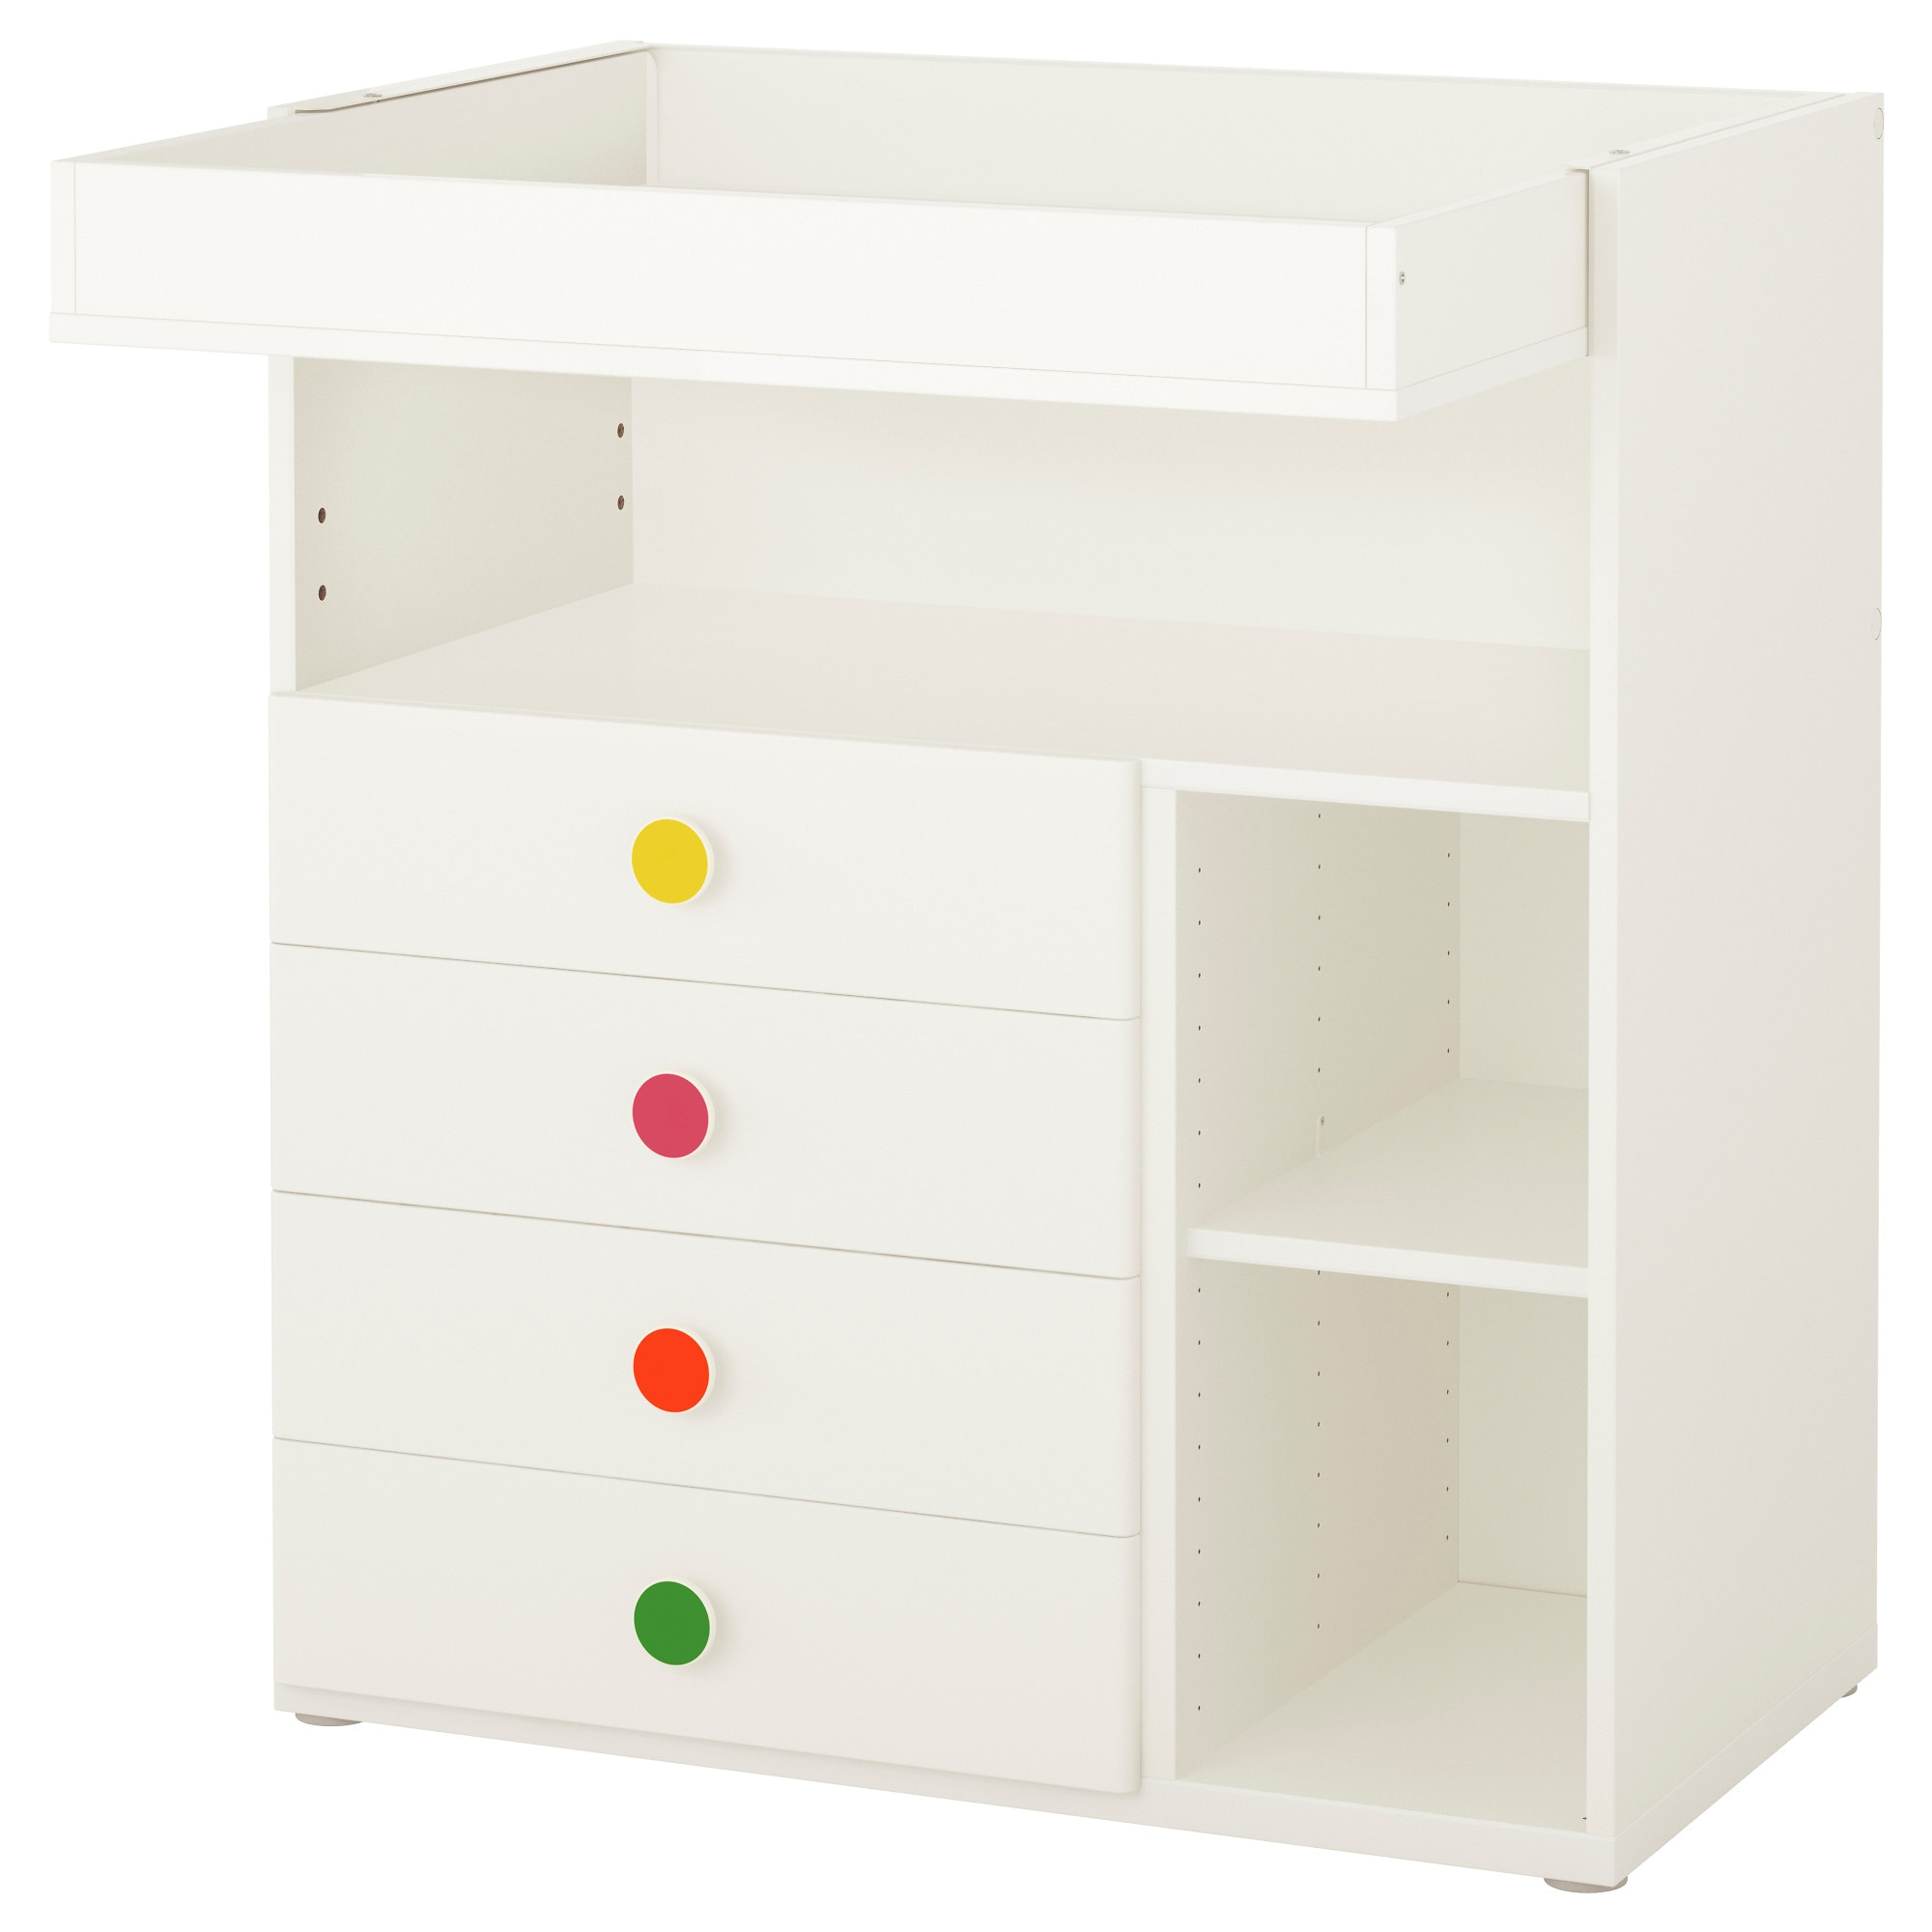 Superior STUVA / FÖLJA Changing Table With 4 Drawers, White Width: 35 3/8